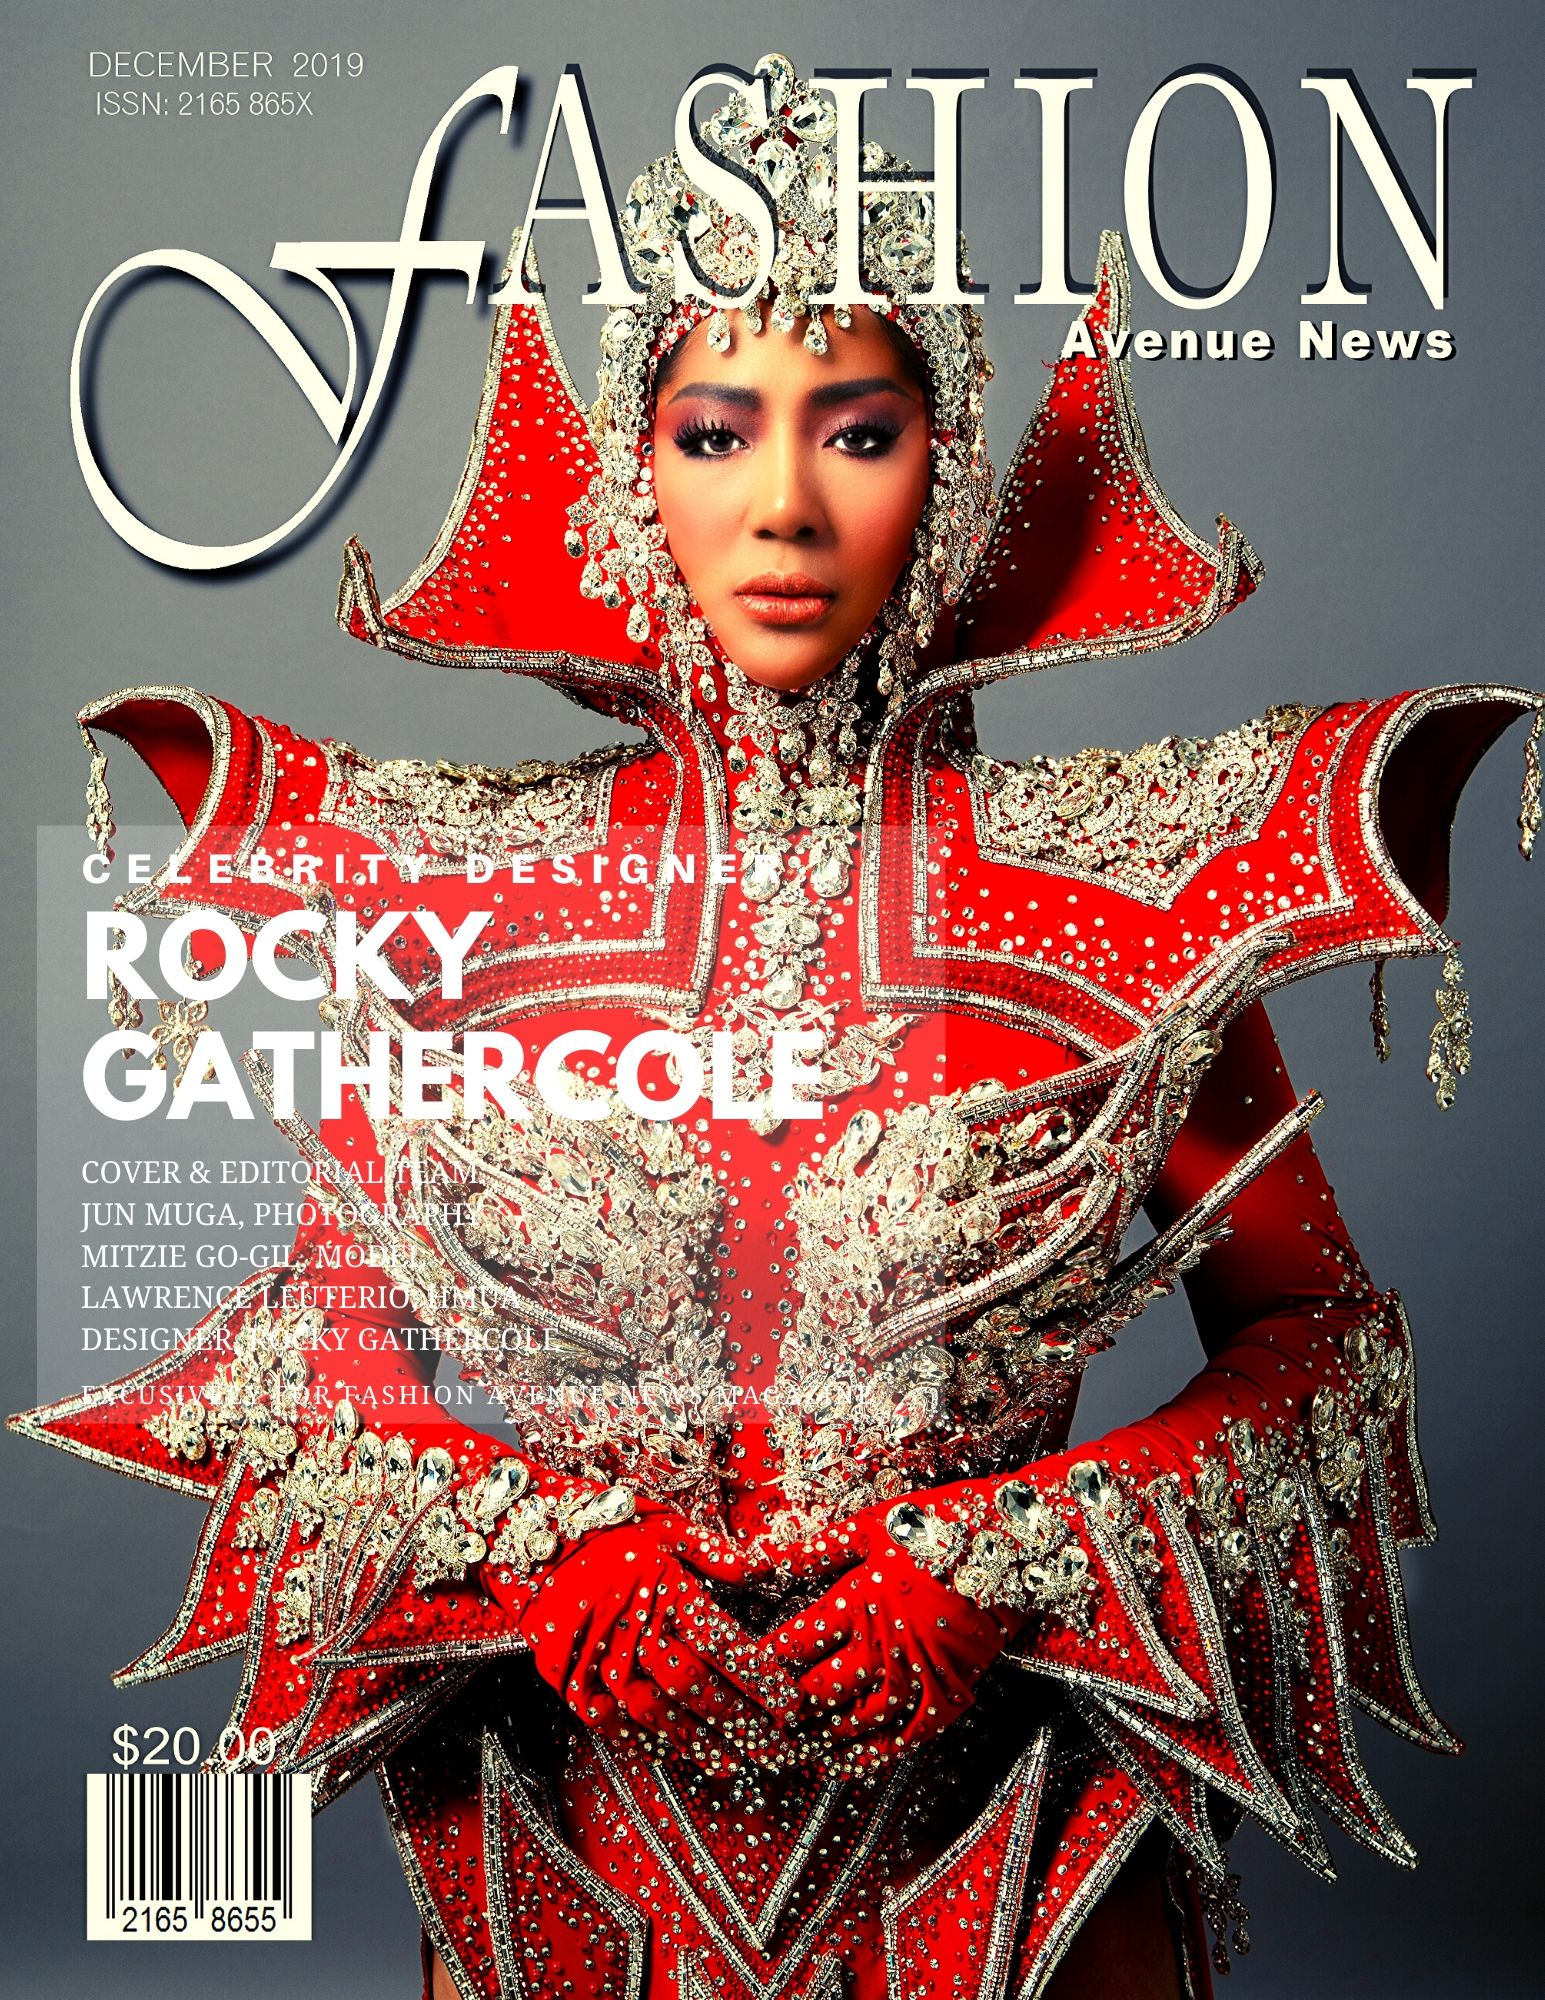 CELEBRITY DESIGNER ROCKY GATHERCOLE